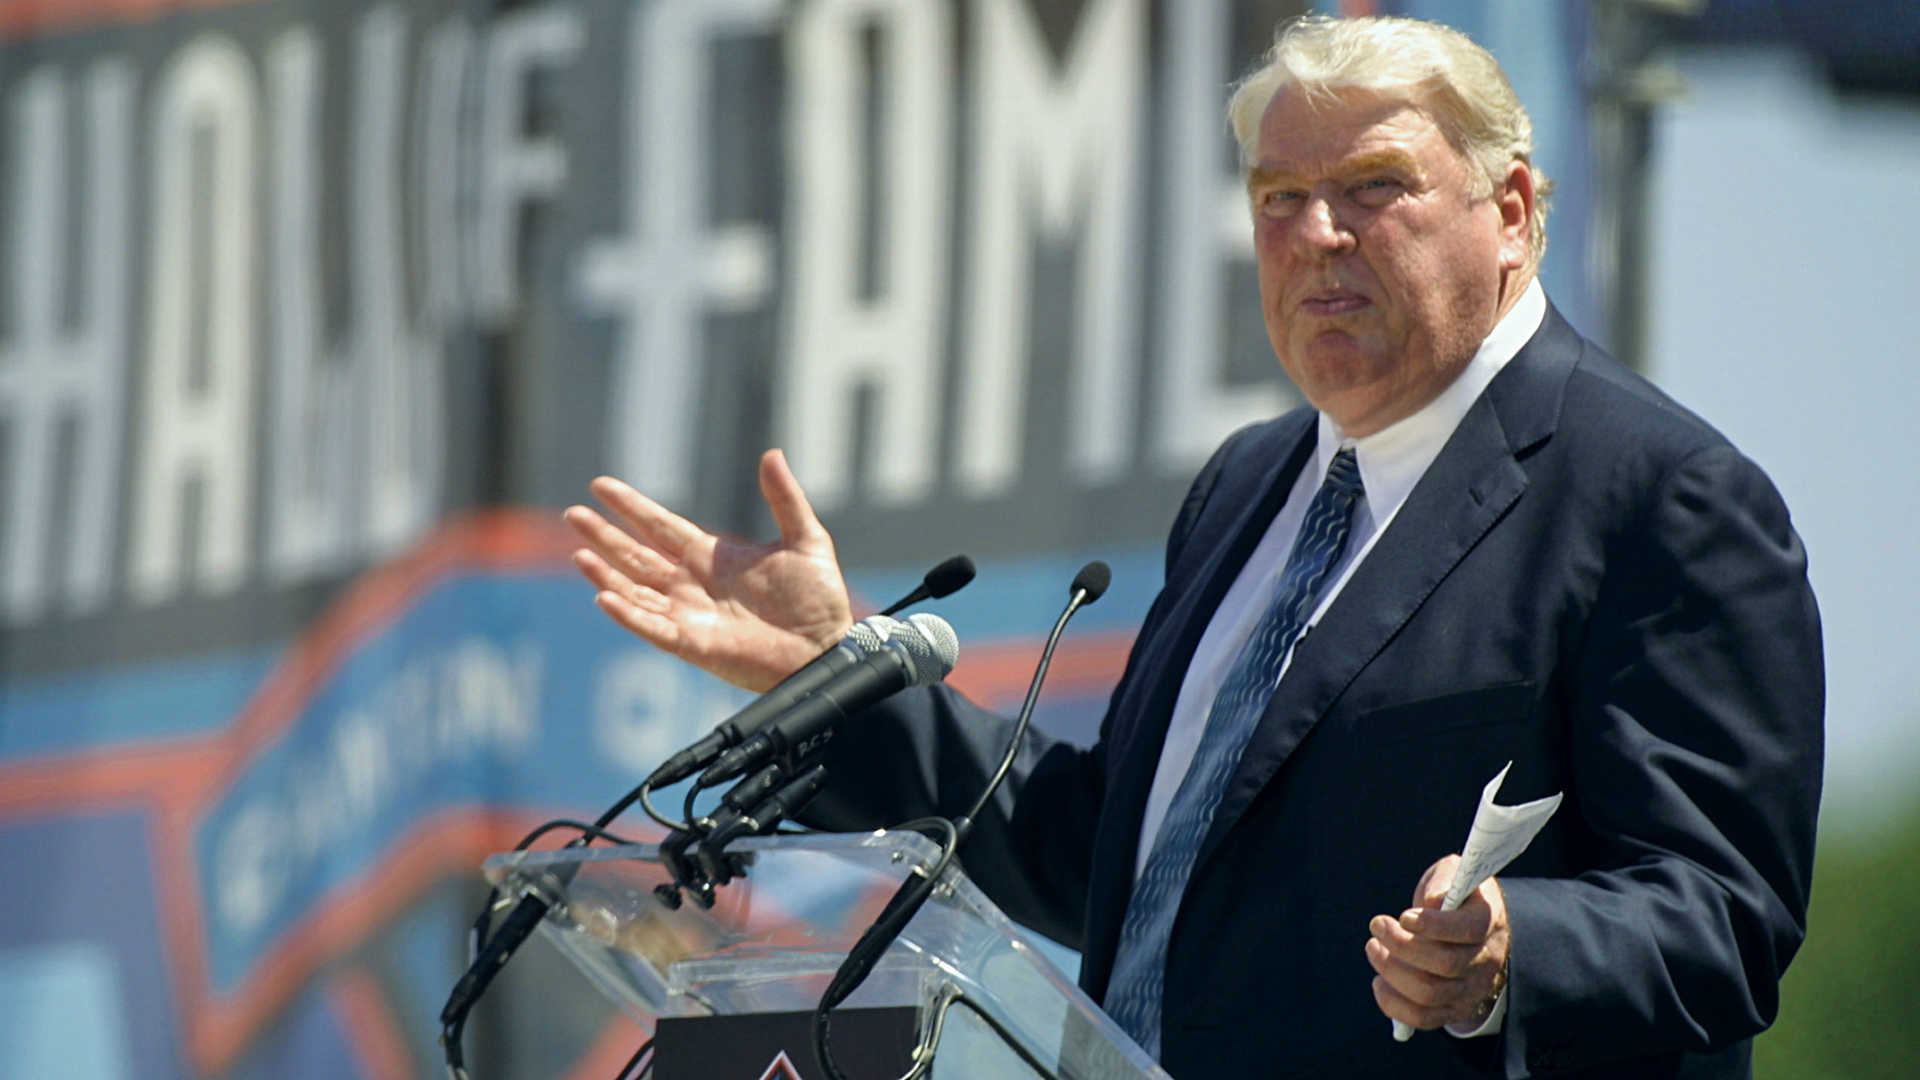 John Madden has good reason to avoid artificial crowd noise on NFL broadcasts, but will he get his wish?